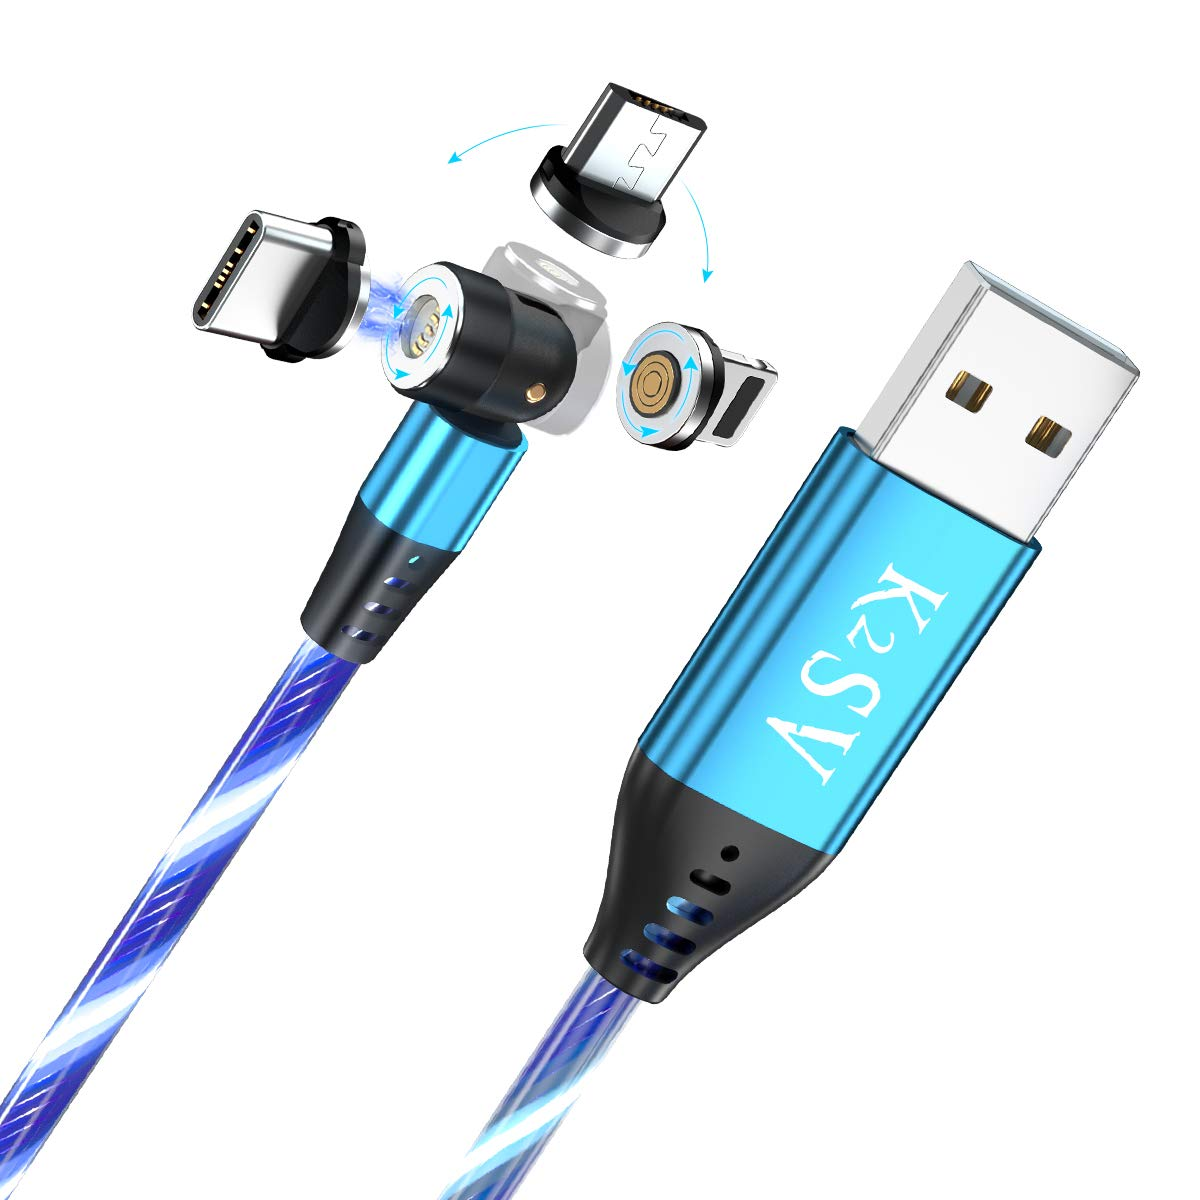 K2SV Luminous Magnetic Charging Cable 540° Rotation Magnetic Flowing Phone Charger Cable, 3A Fast Charge with Data Transfer, Magnetic Cable Compatible with Any Devices (Blue)